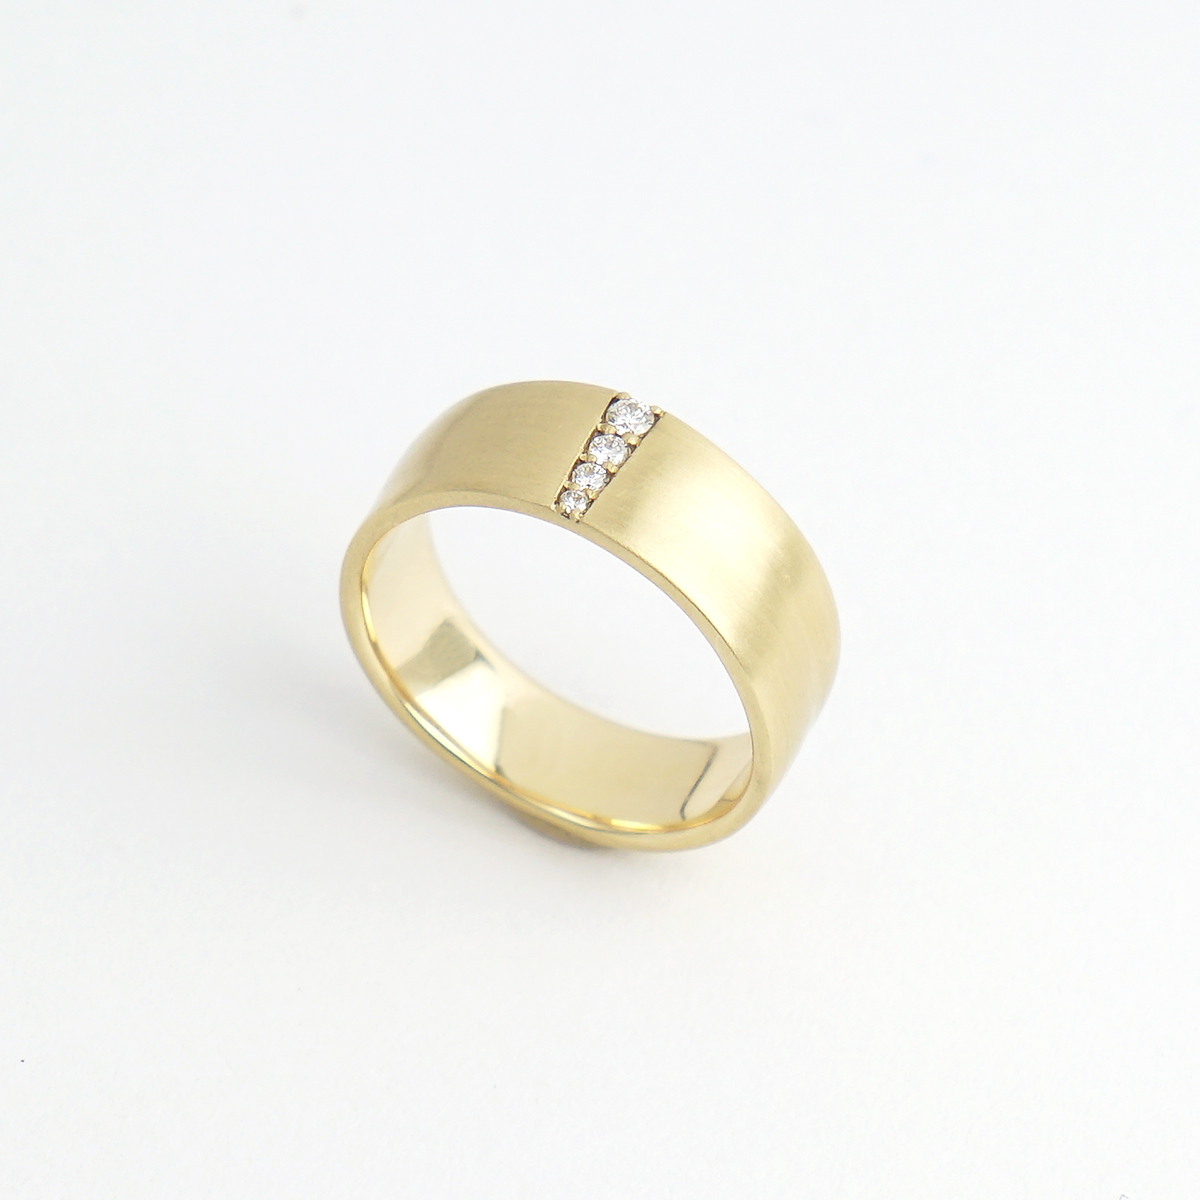 The Heritage wide ring